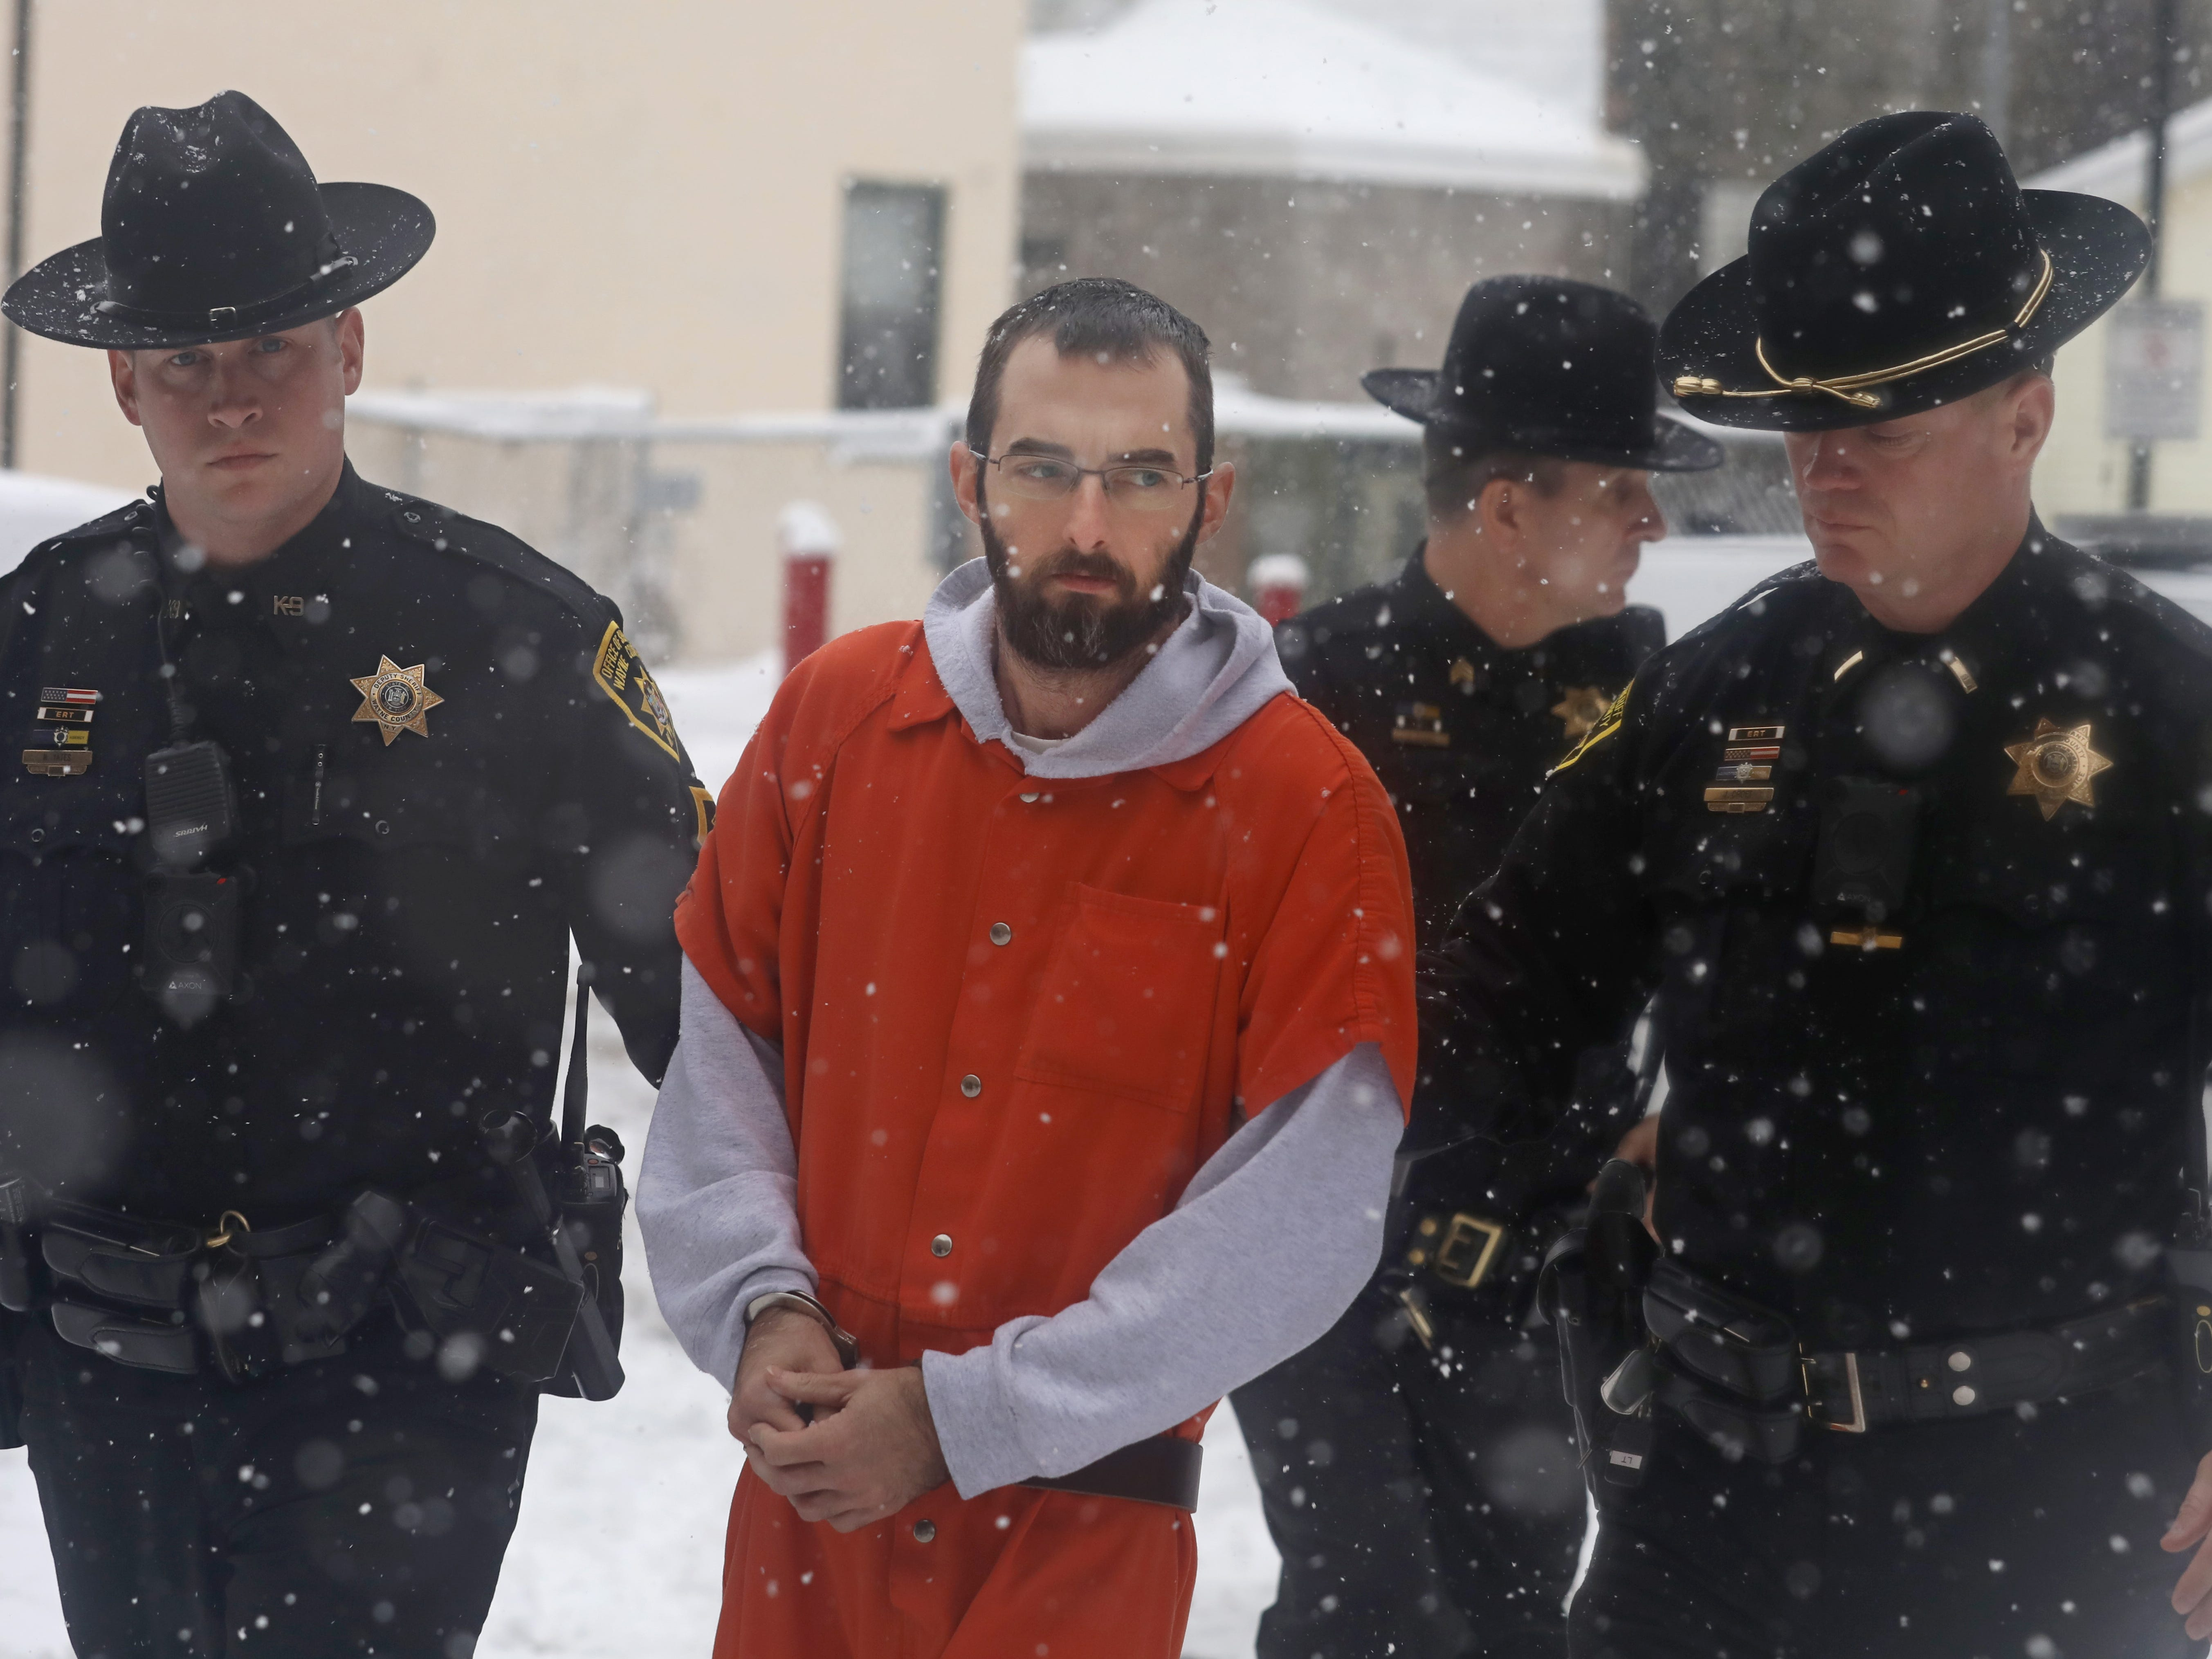 Timothy Dean is lead to his hearing at the Wayne County Courthouse in Lyons Wednesday, Nov. 28, 2018.